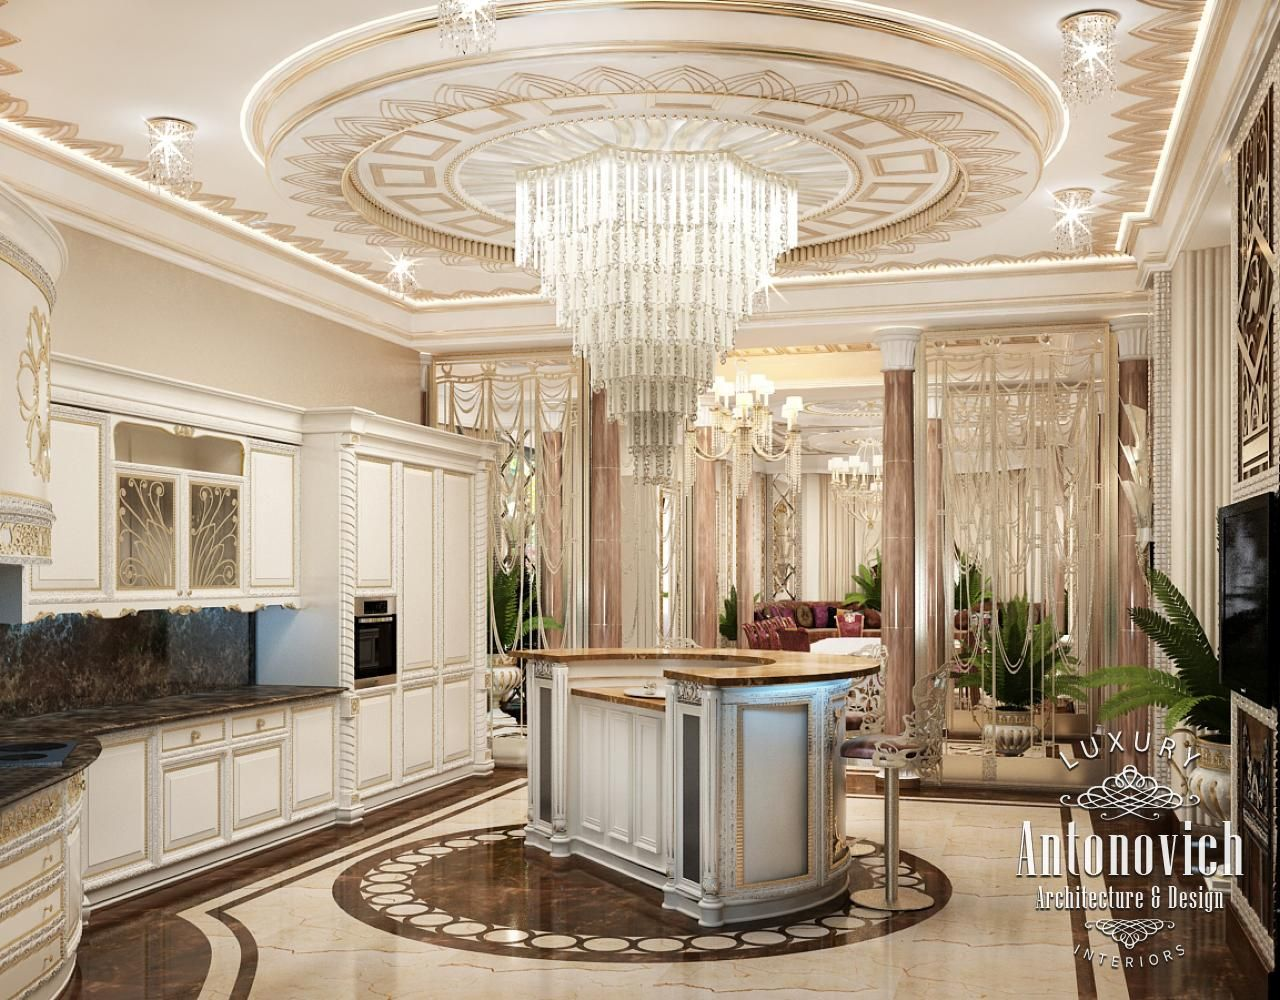 kitchen designers dubai kitchen design in dubai luxury kitchen amp dining photo 7 149